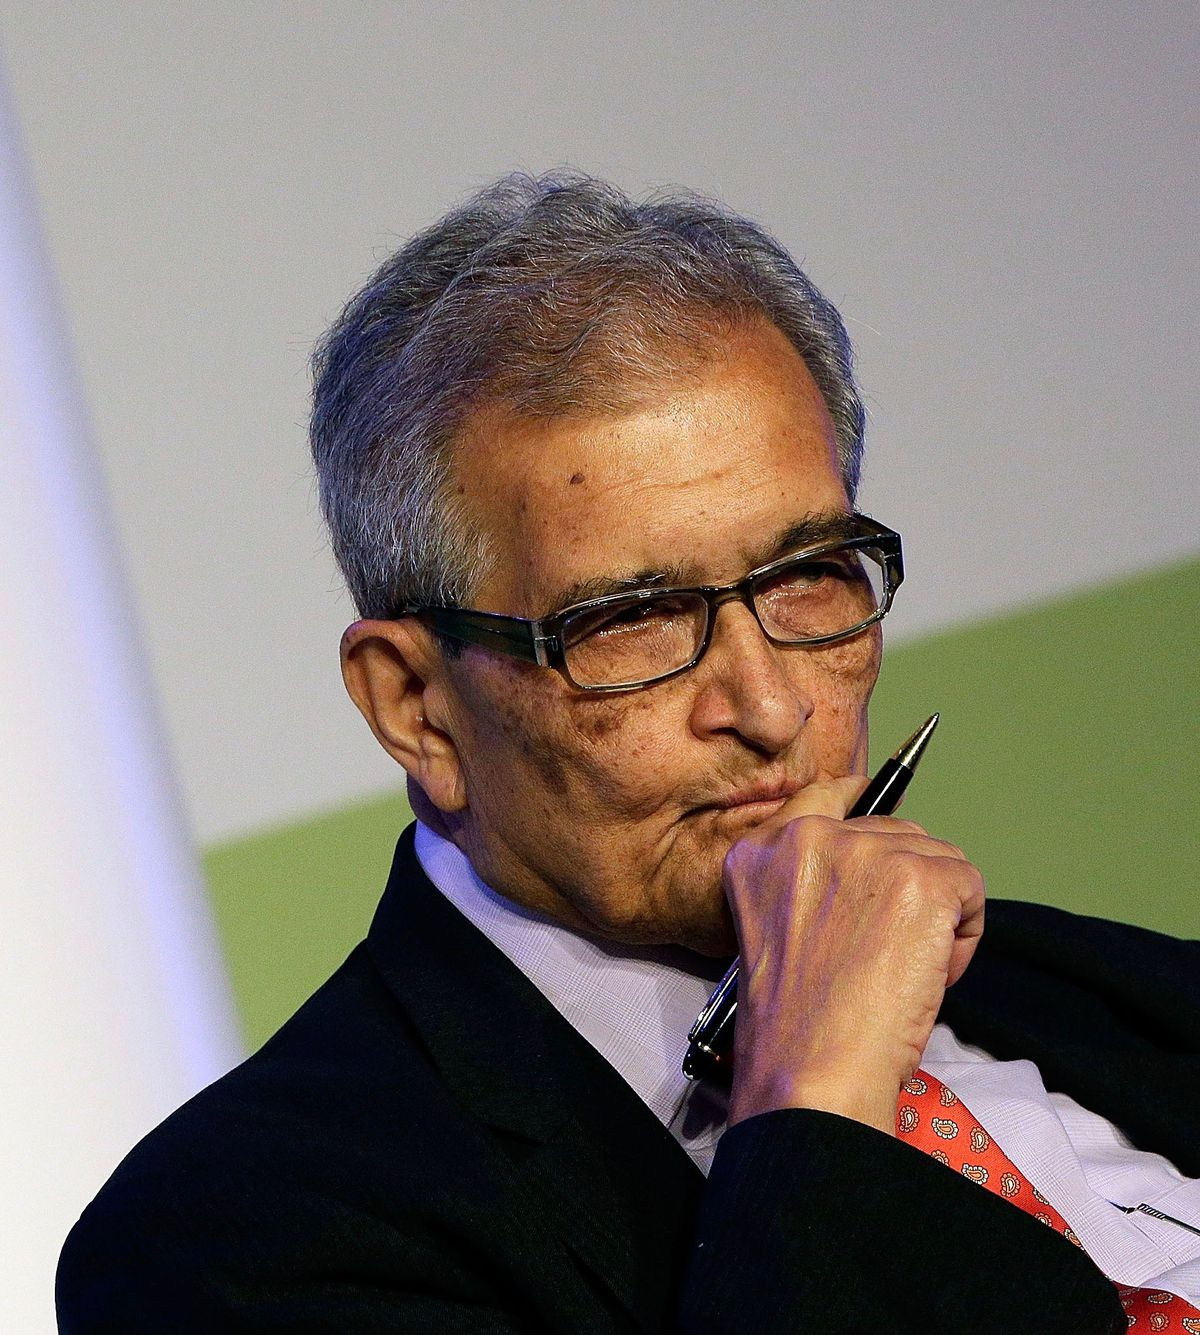 Amartya Sen looks pensive, at a conference.